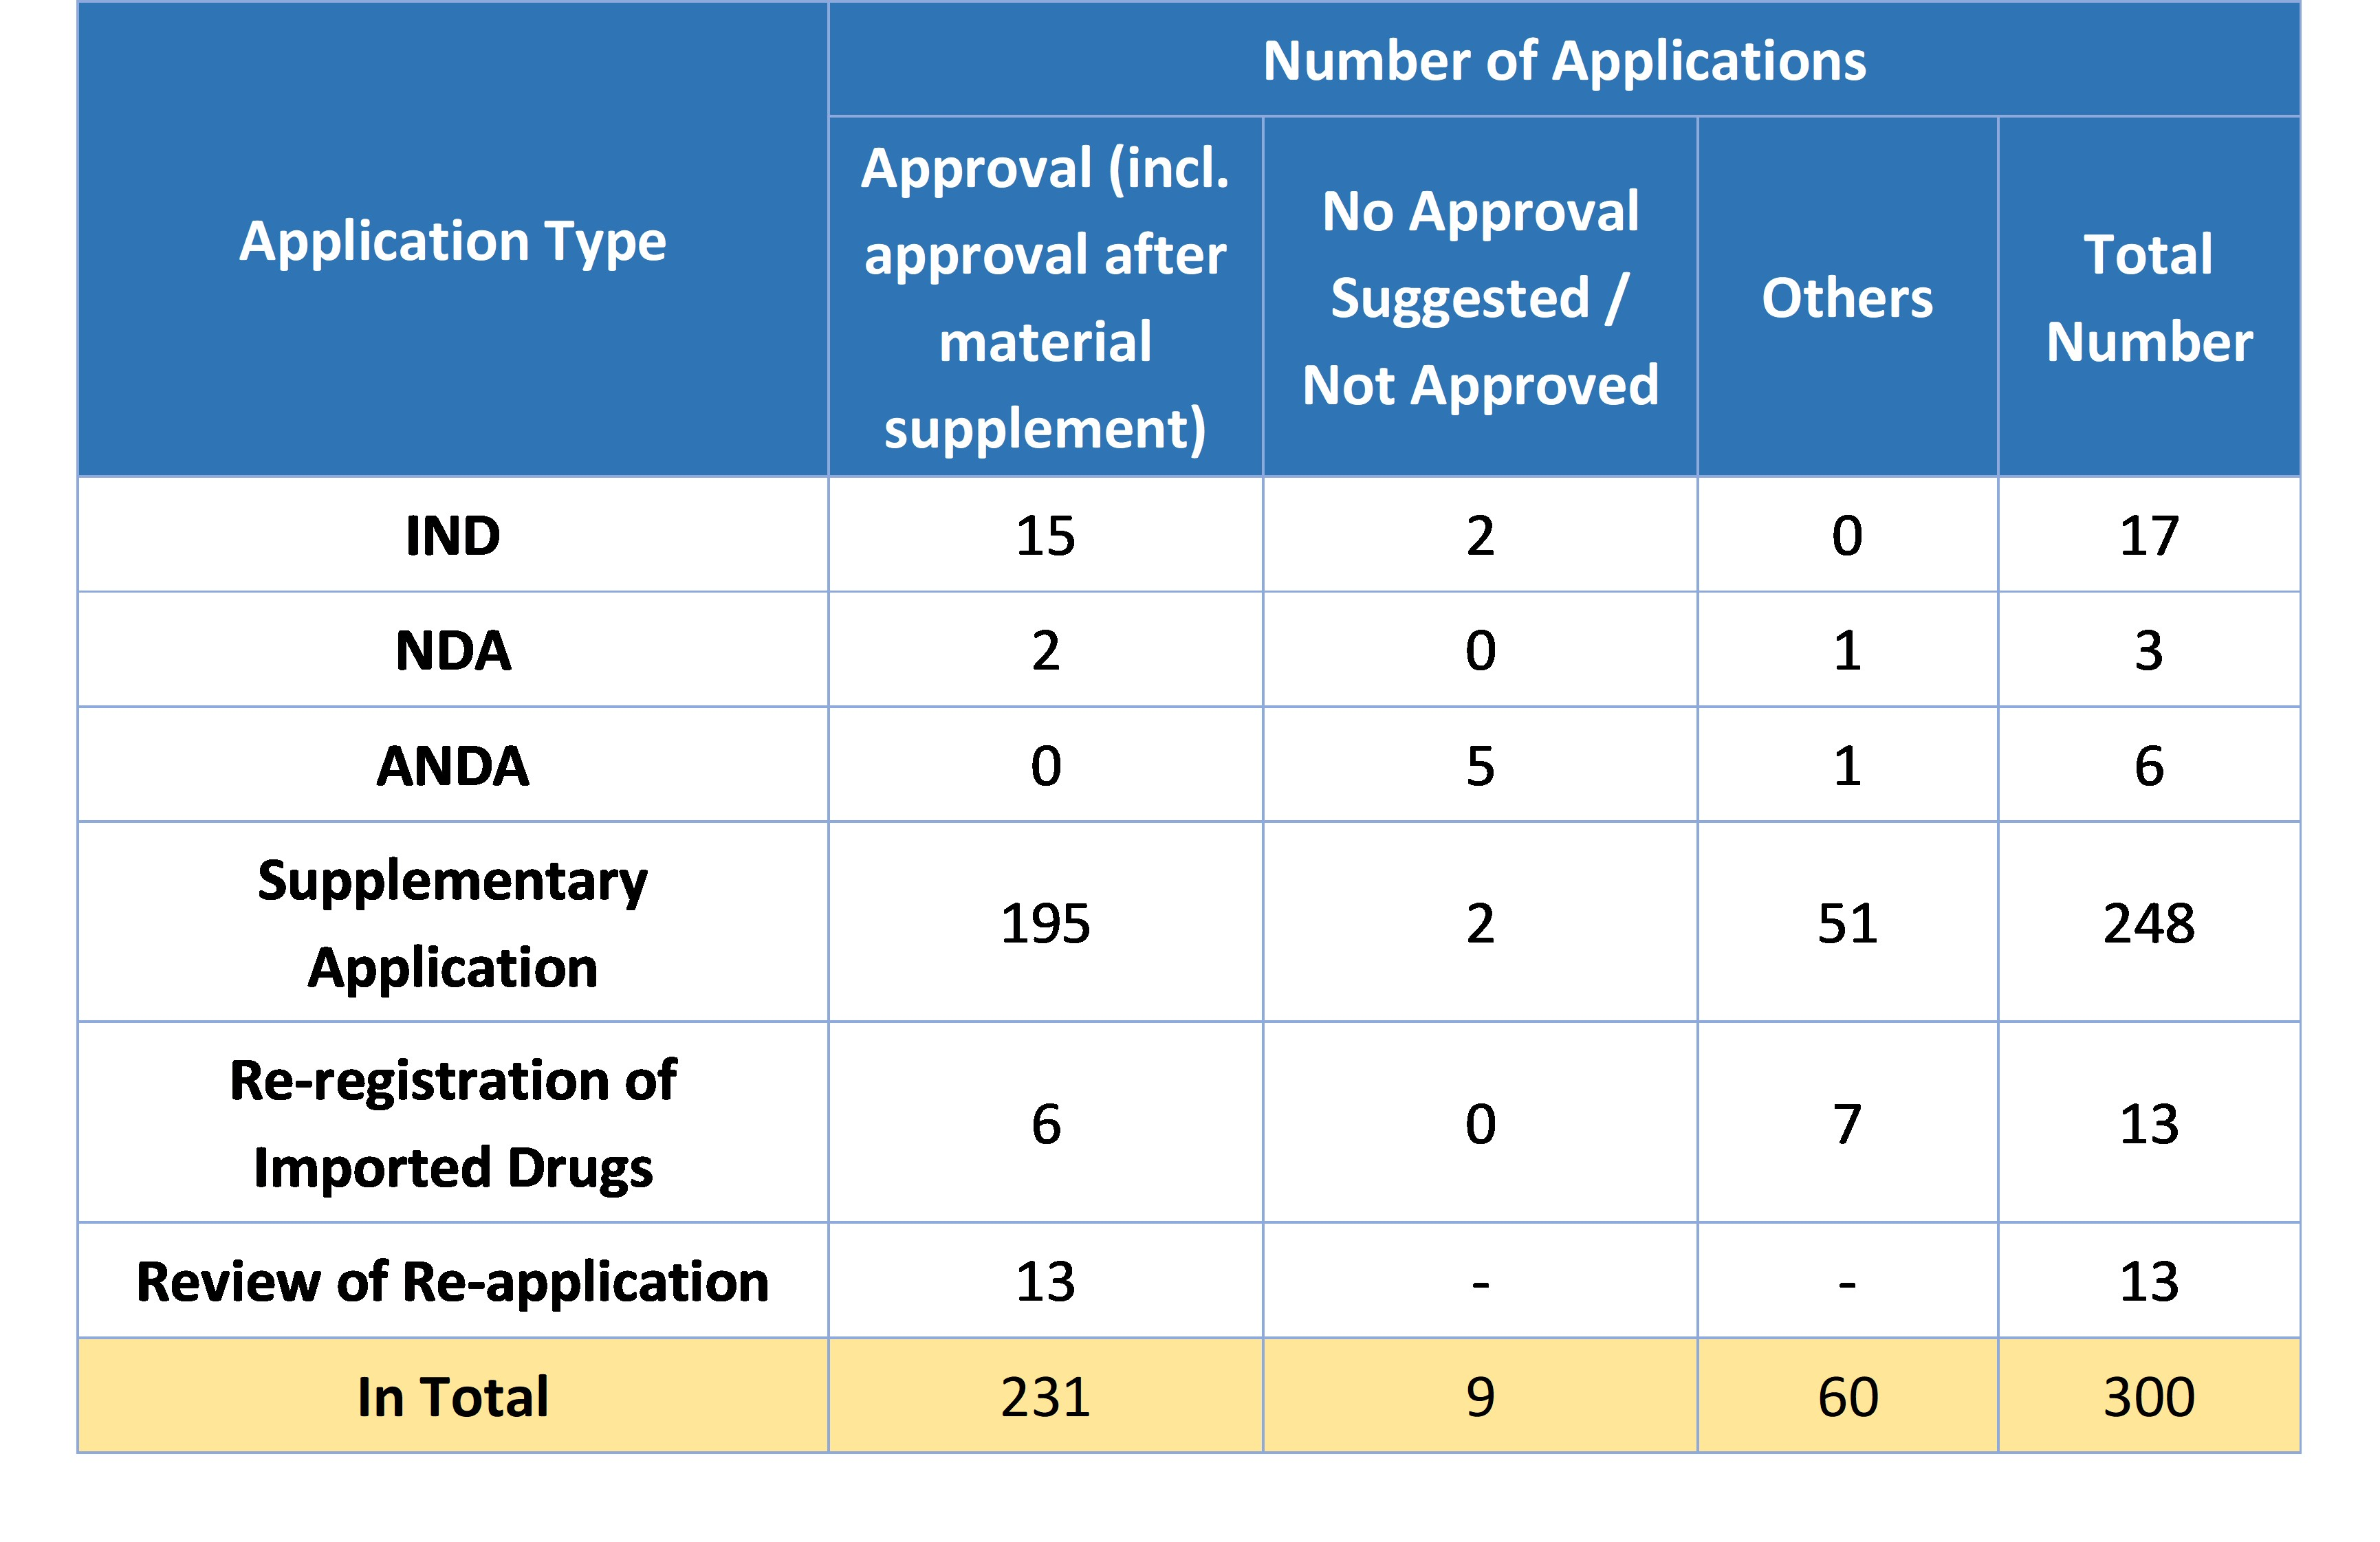 Table 6. Overview of Approvals for Traditional Chinese Medicine Registrations in 2019